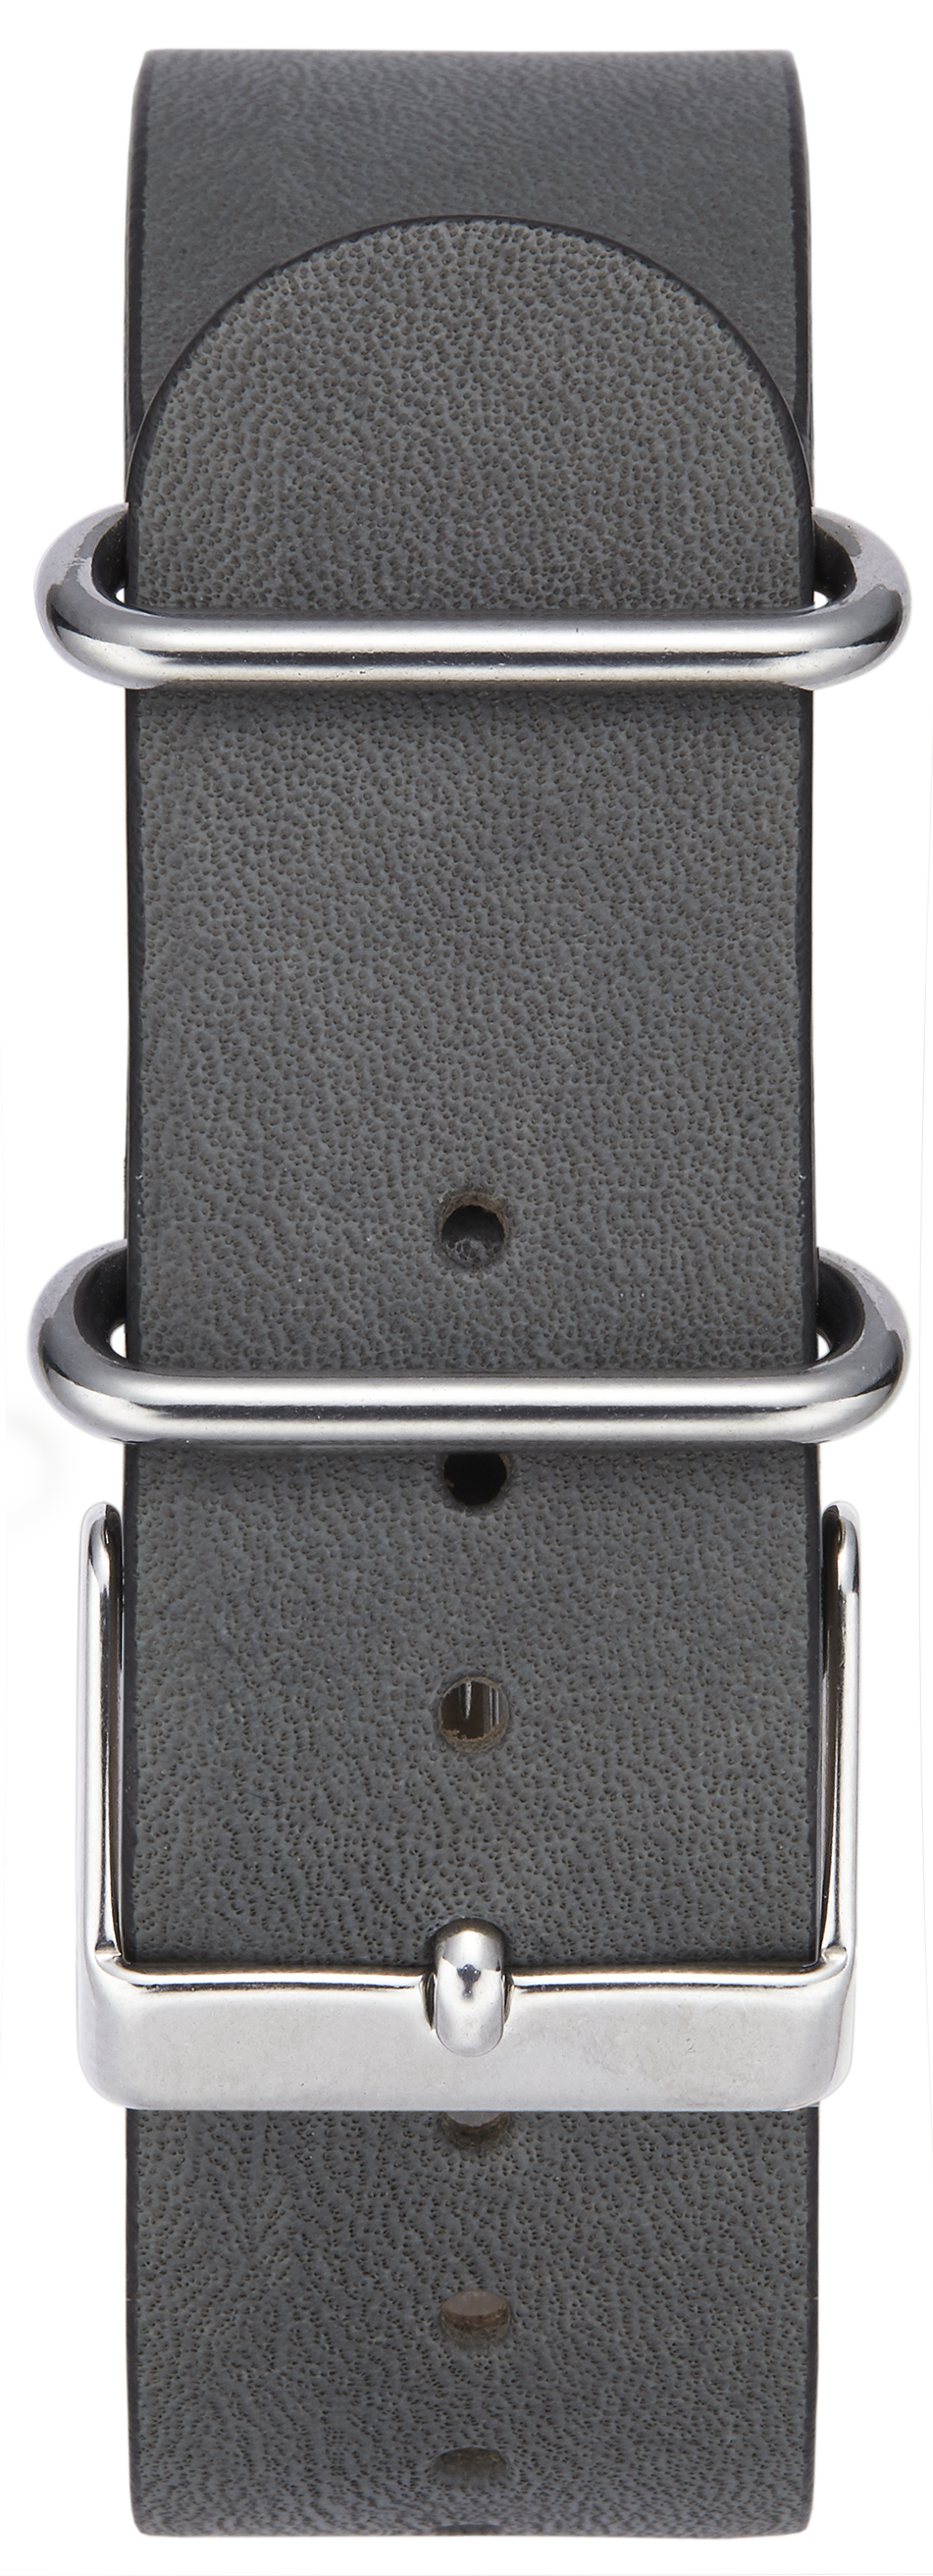 GREY W/ STAINLESS STEEL BUCKLE